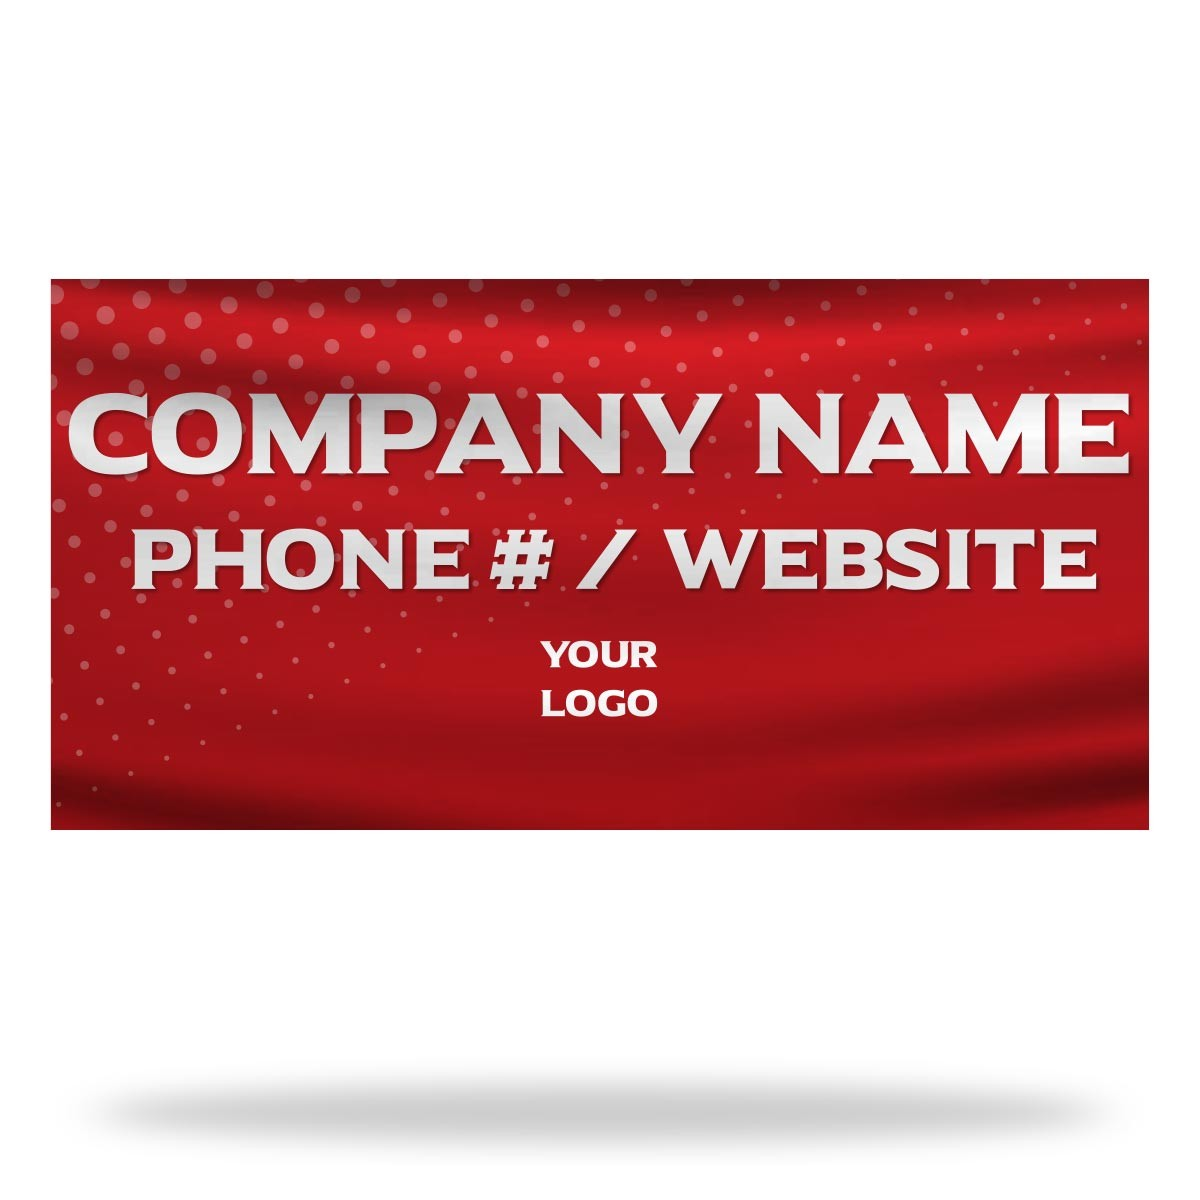 Universal Business Info Flags & Banners Design 02